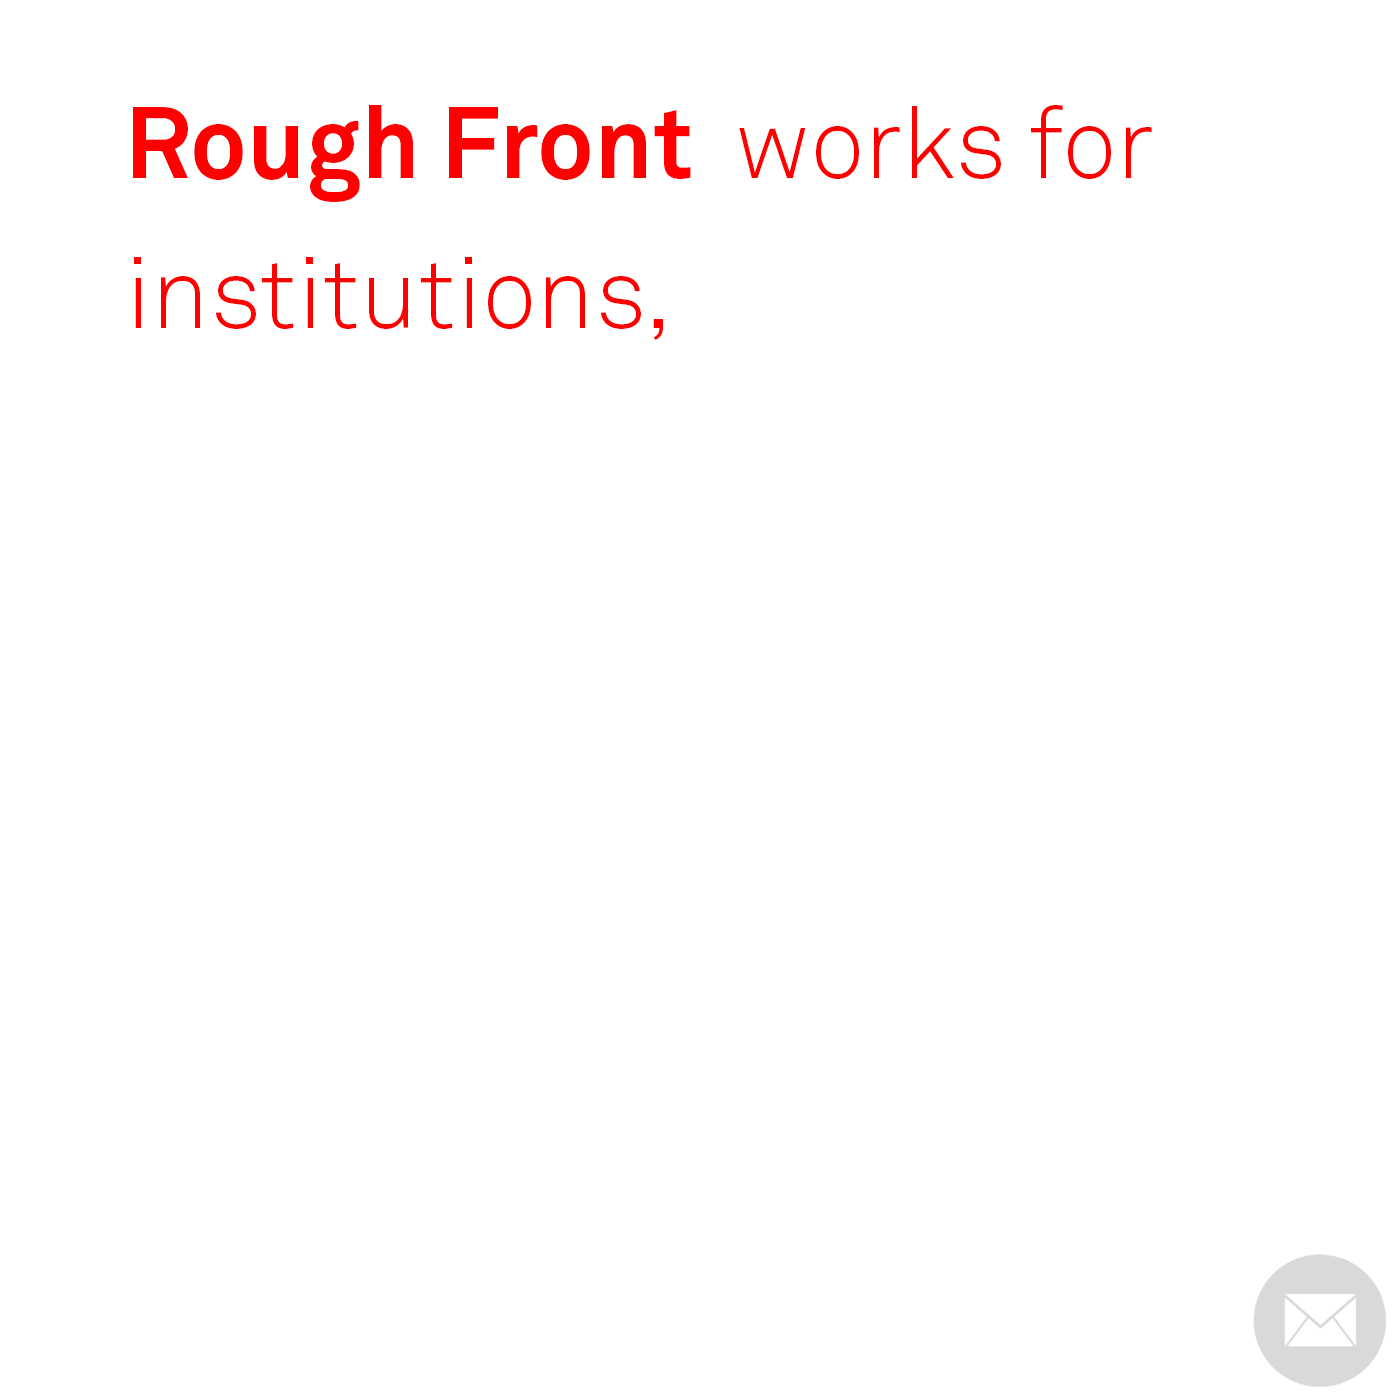 Rough Front is -envelope- 011.jpg